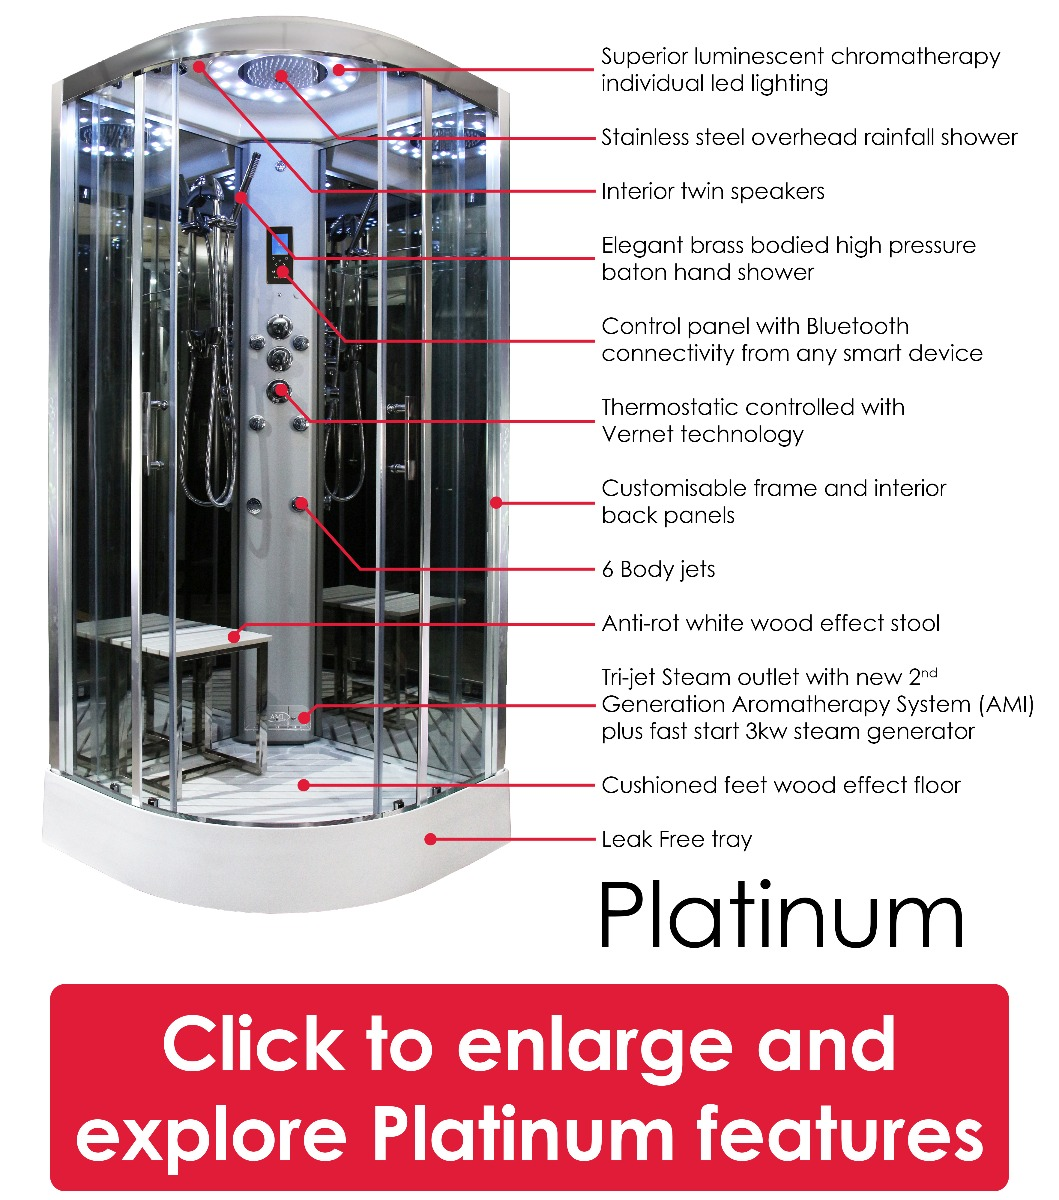 Platinum Shower features